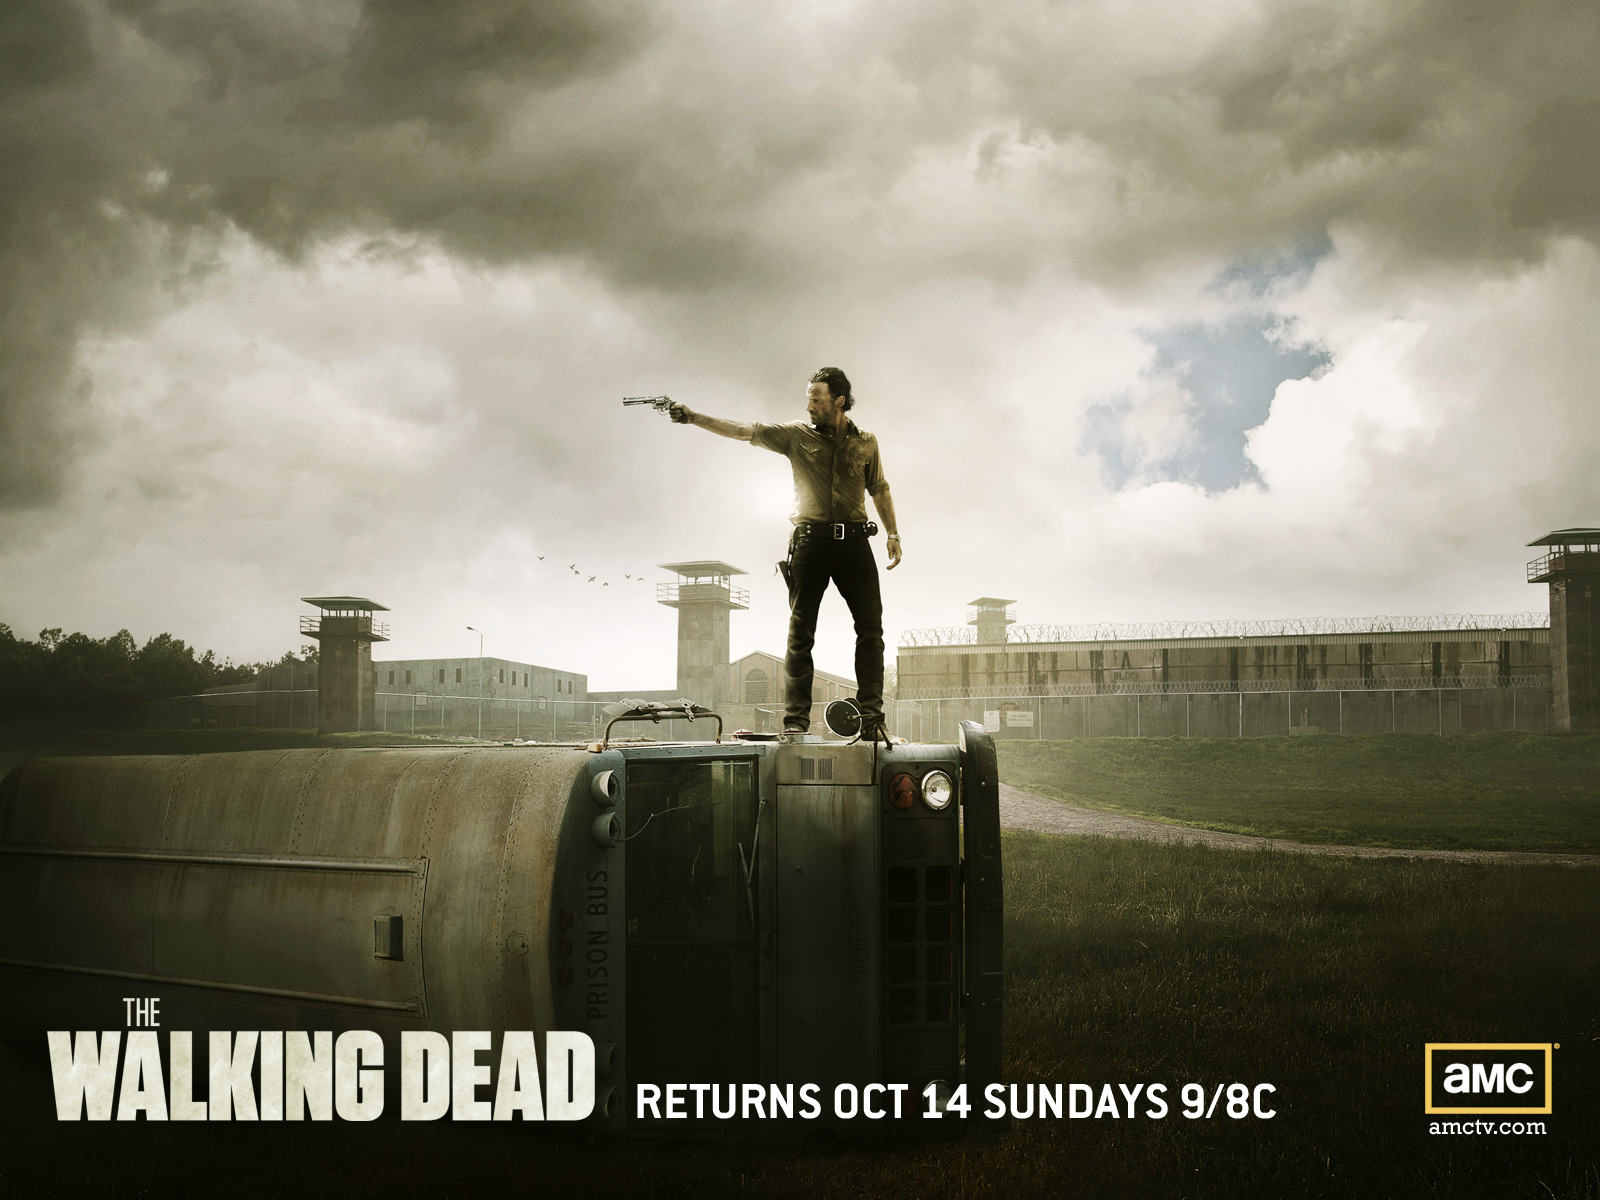 49 Walking Dead Season 3 Wallpaper On Wallpapersafari